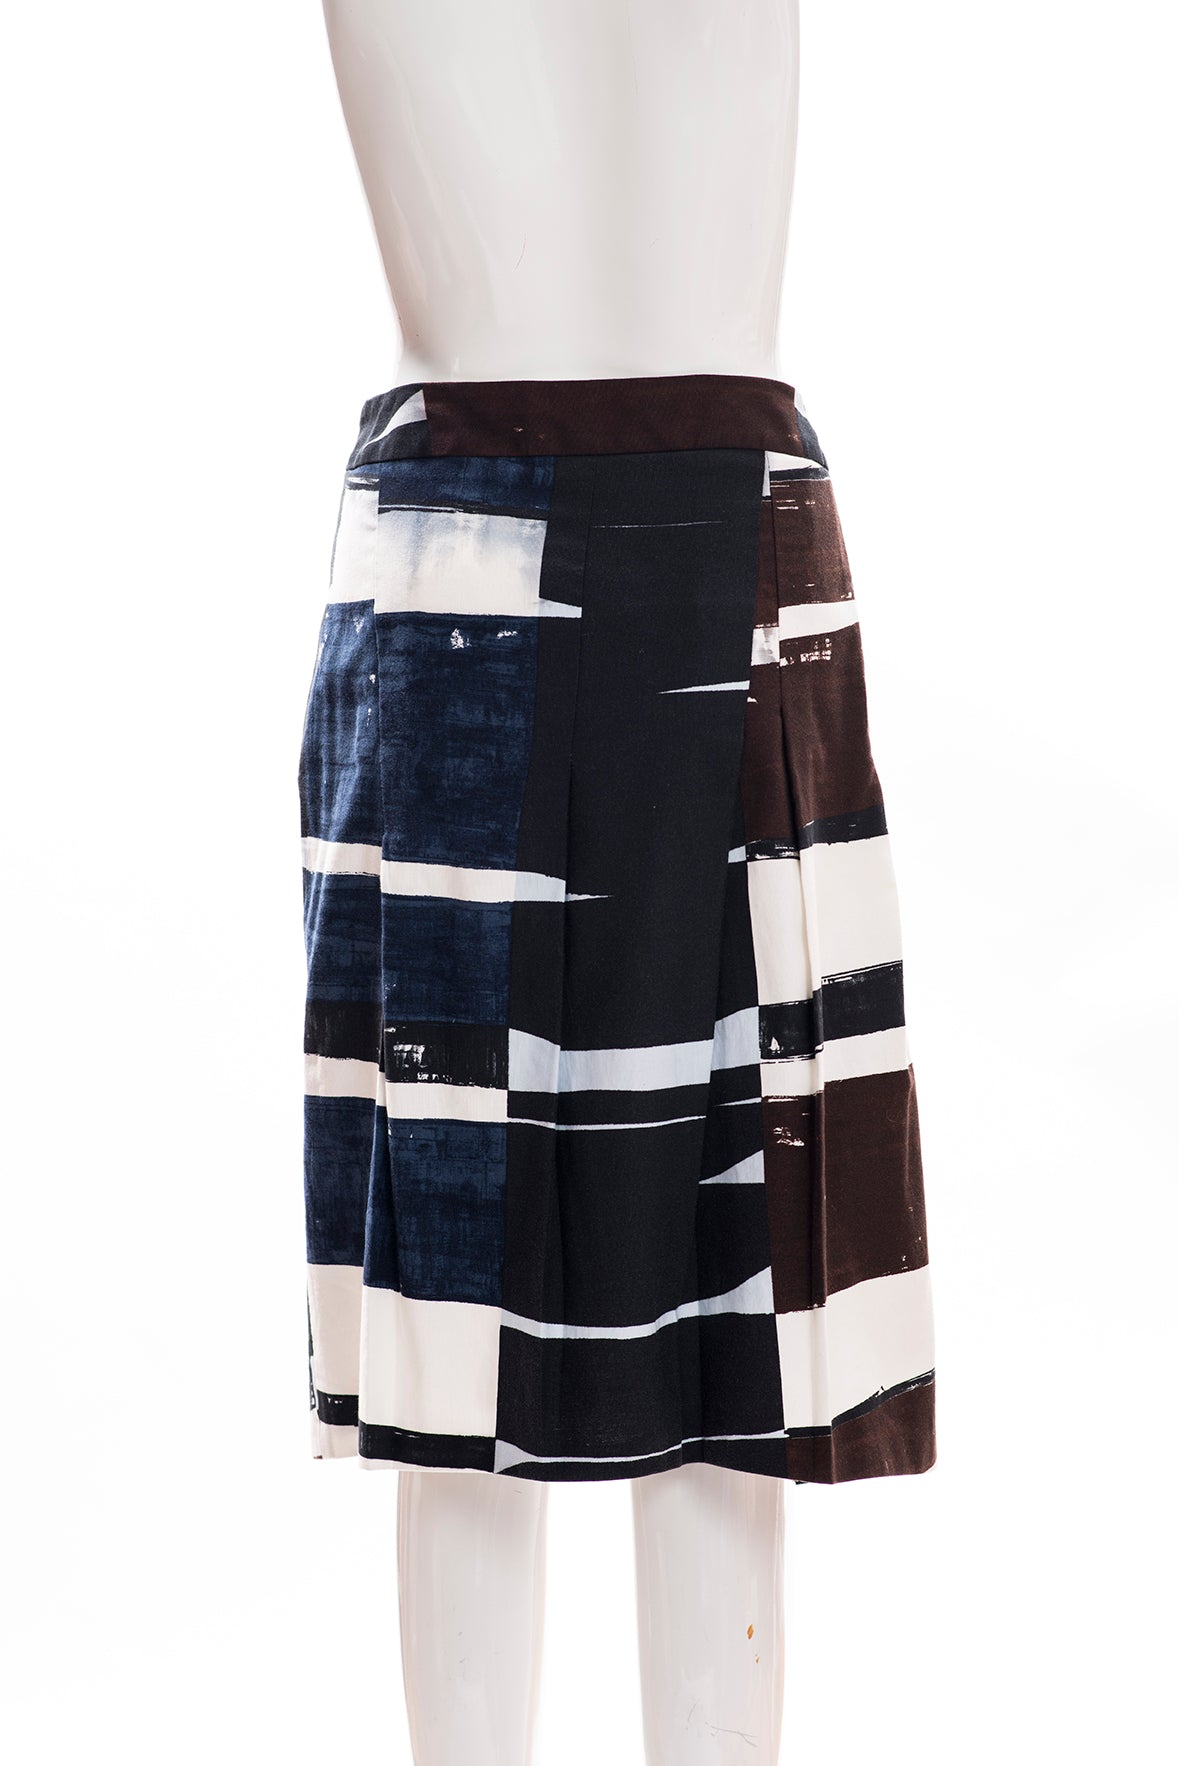 AKRIS Punto Black White Brown Blue Abstract Print Cotton Pleat Skirt FR 44 12 FC